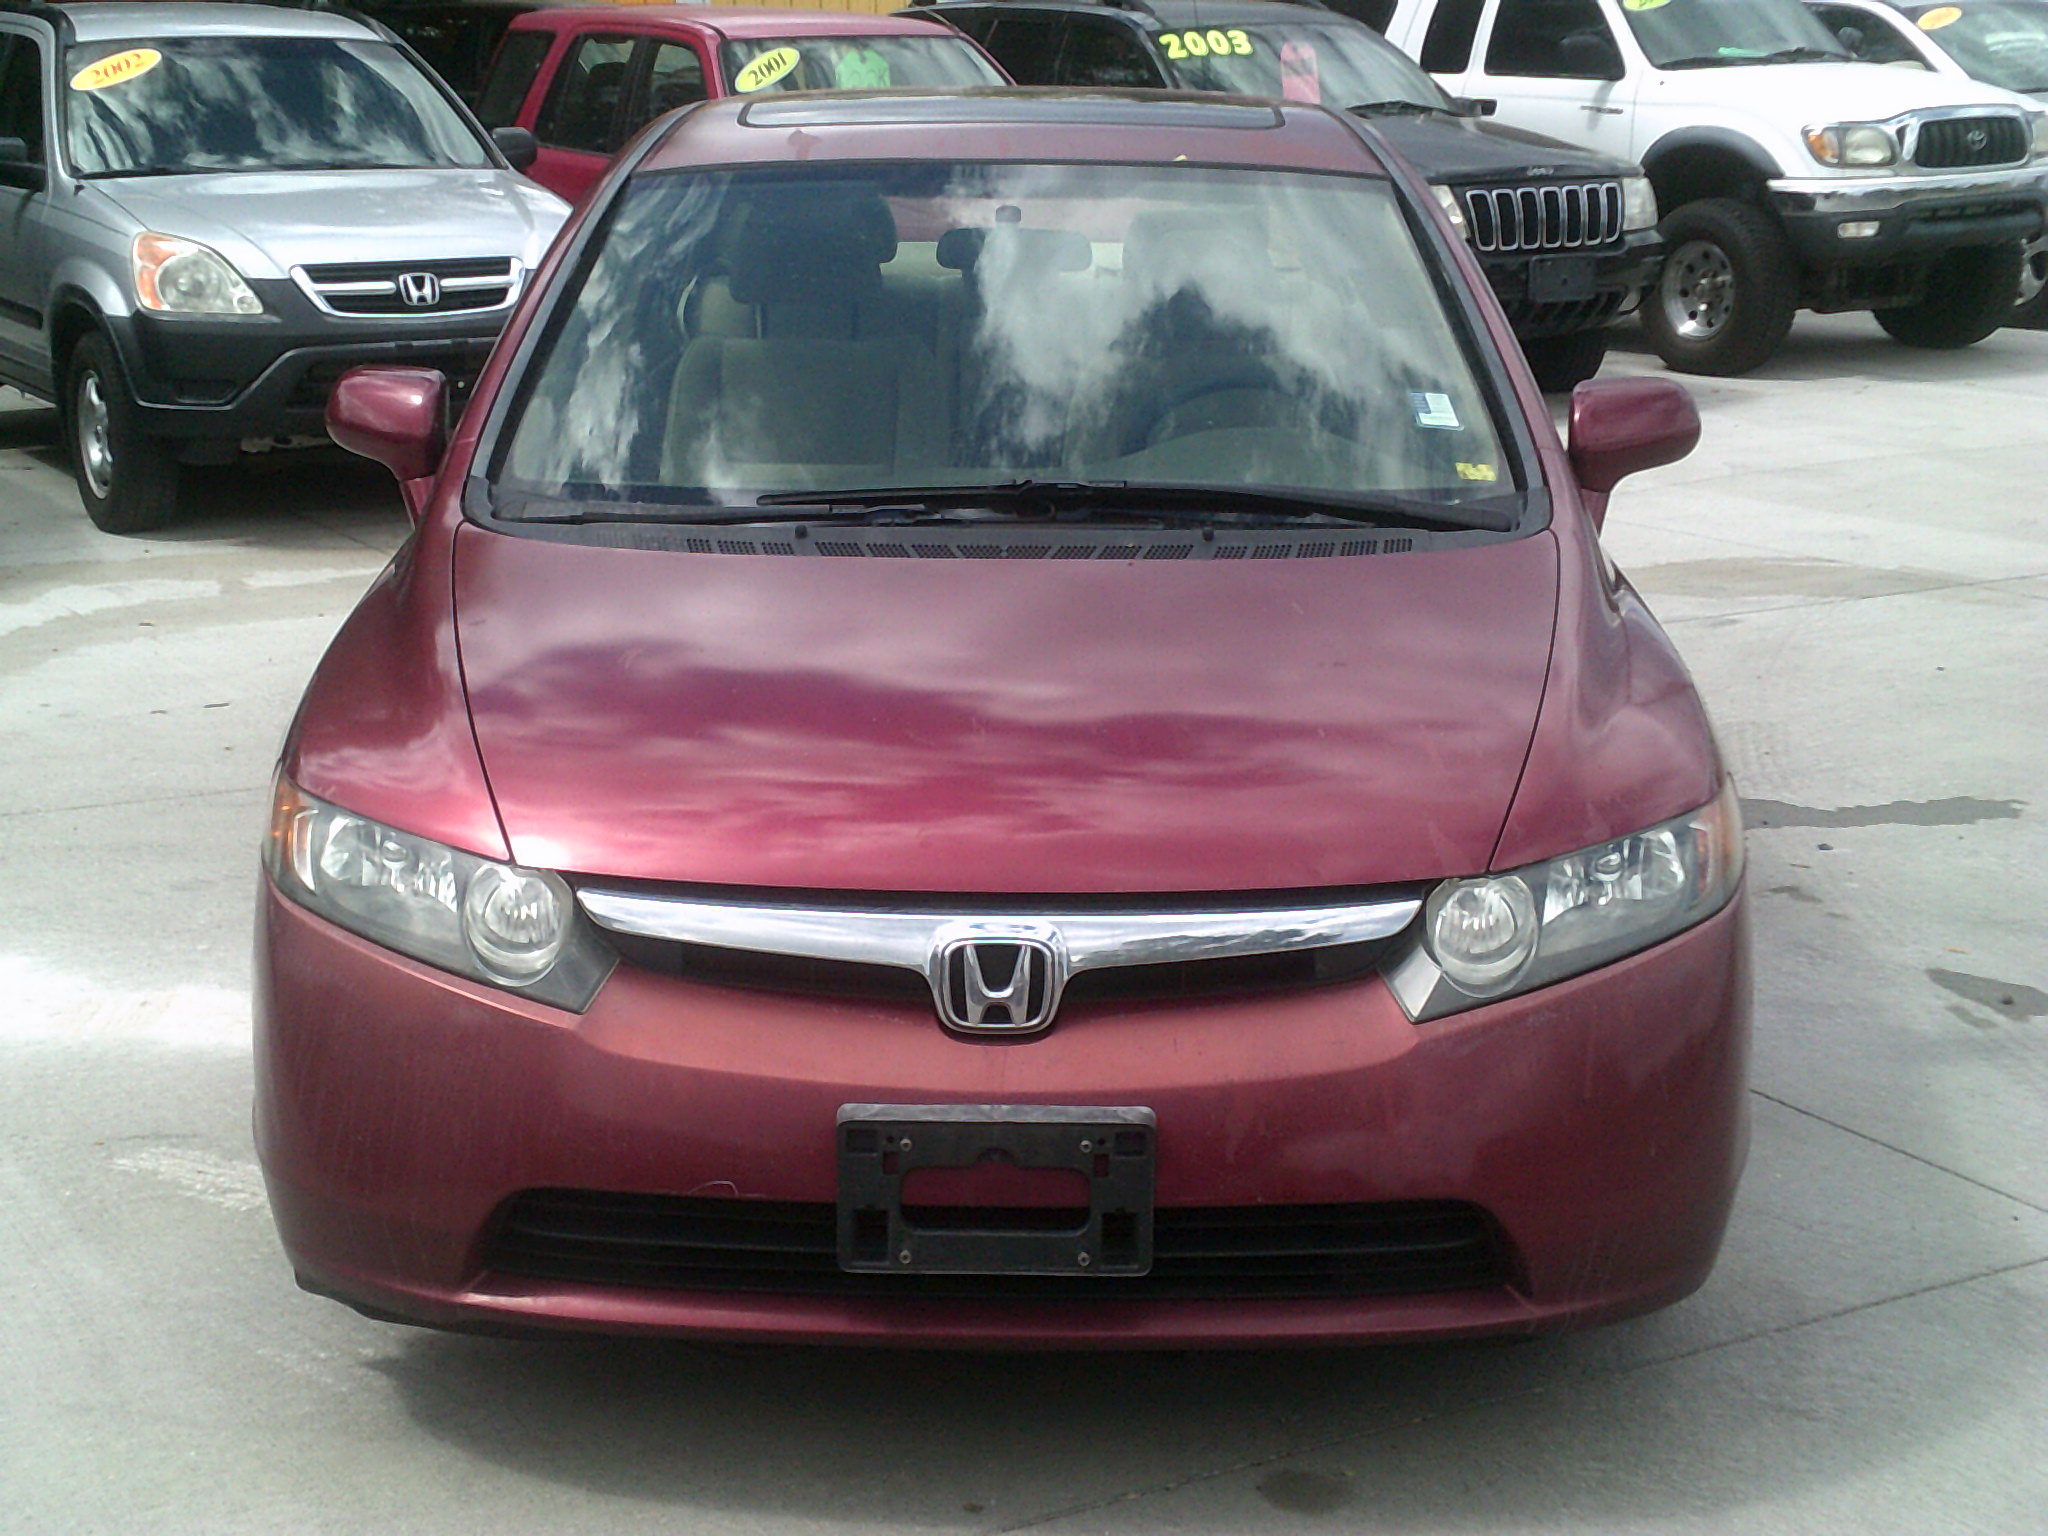 This Civic Gets 25 Miles Per Gallon In The City And 36 Mpg On The Highway.  138K, Automatic, AC, Sunroof, CD Player.